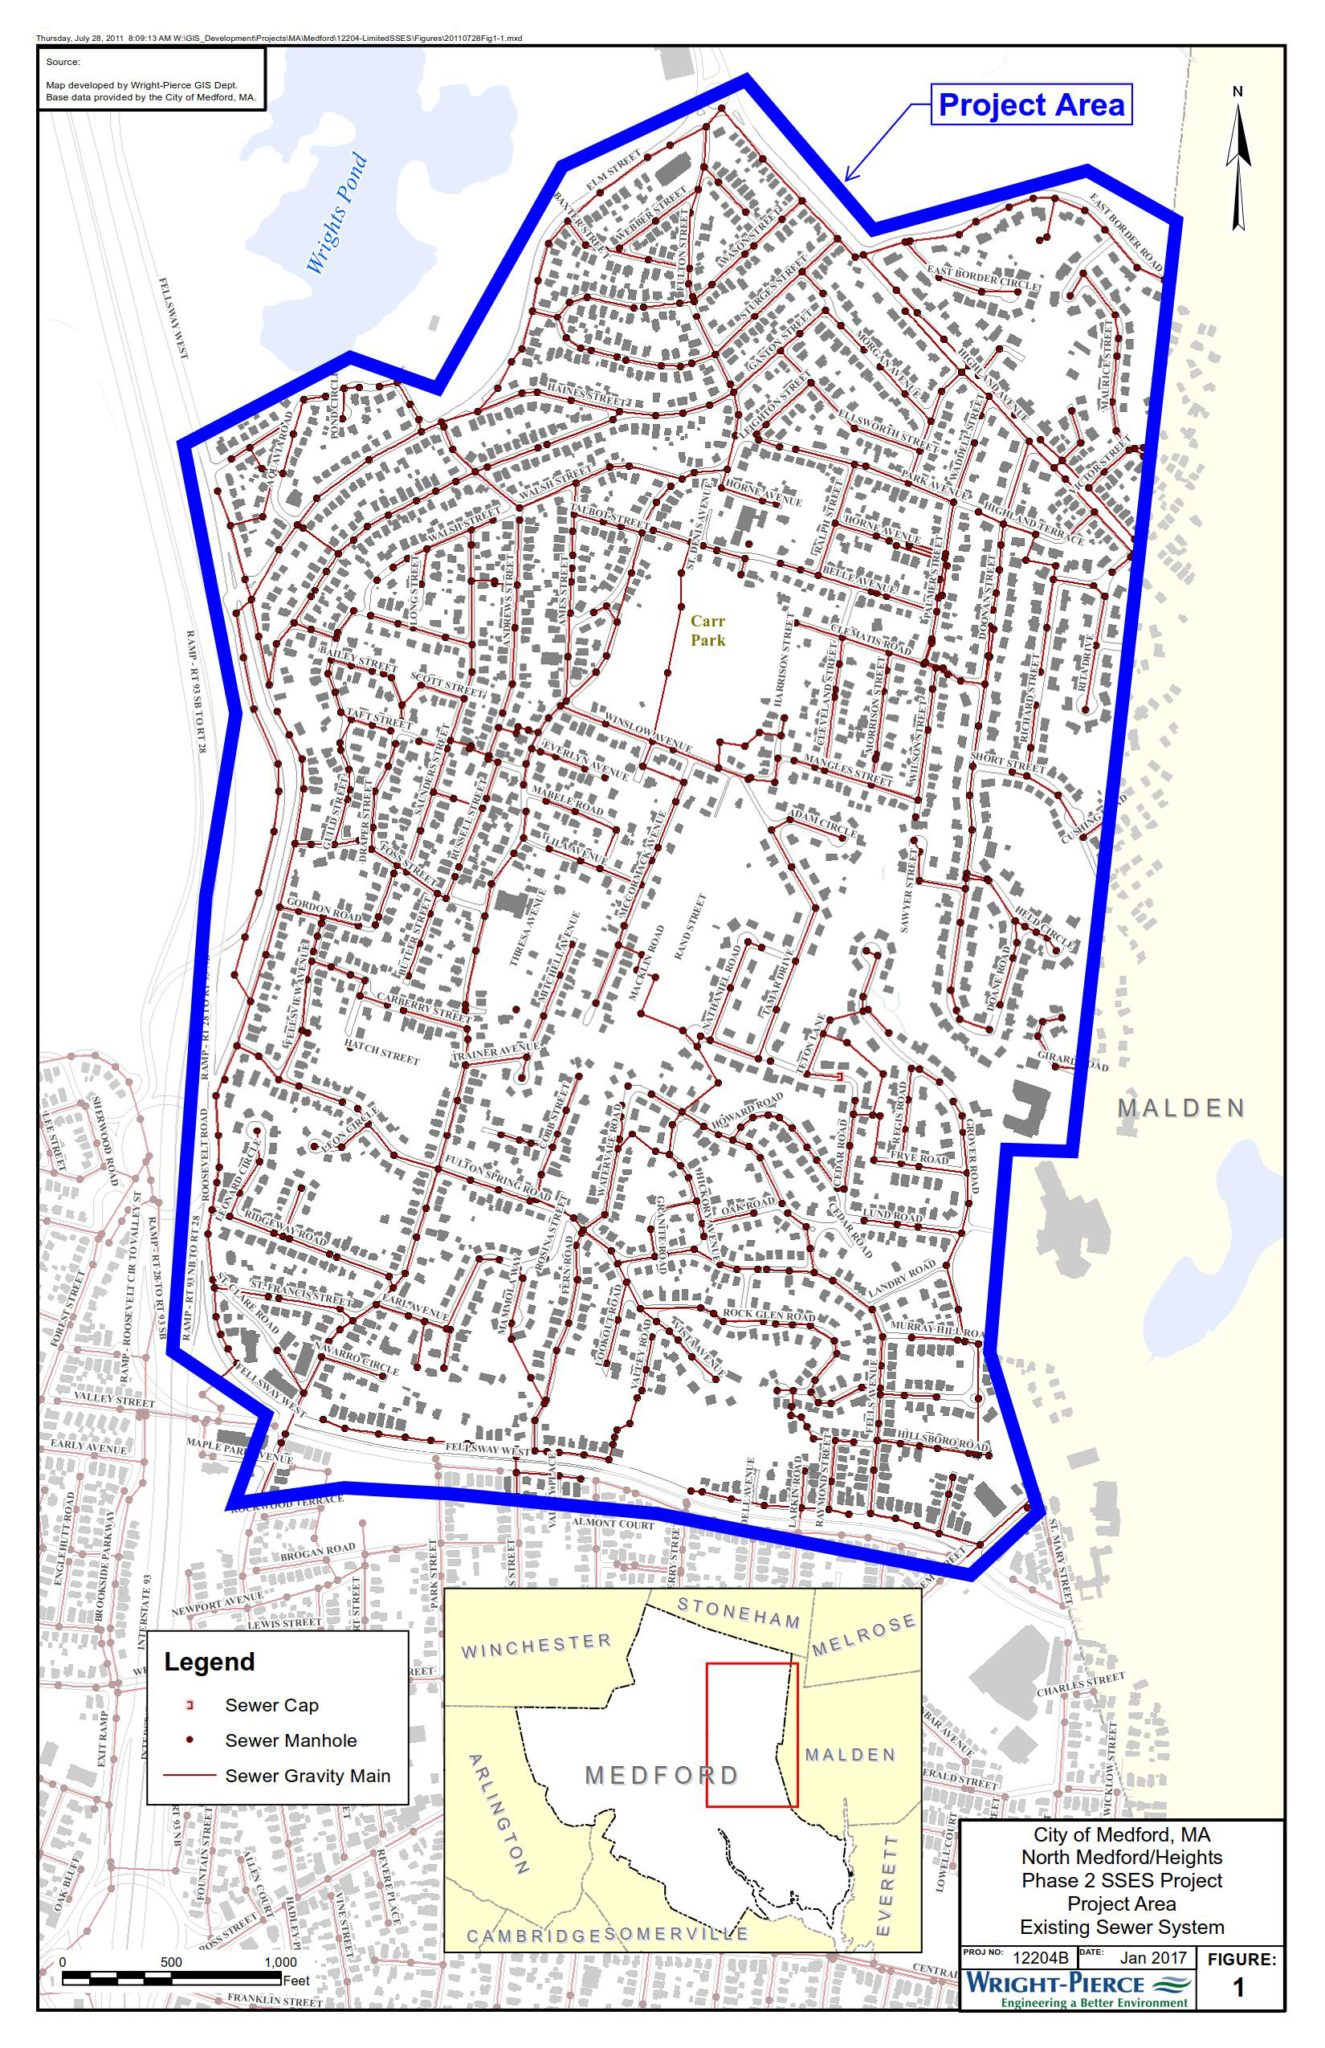 City of Medford Sanitary Sewer Manhole Inspections in January